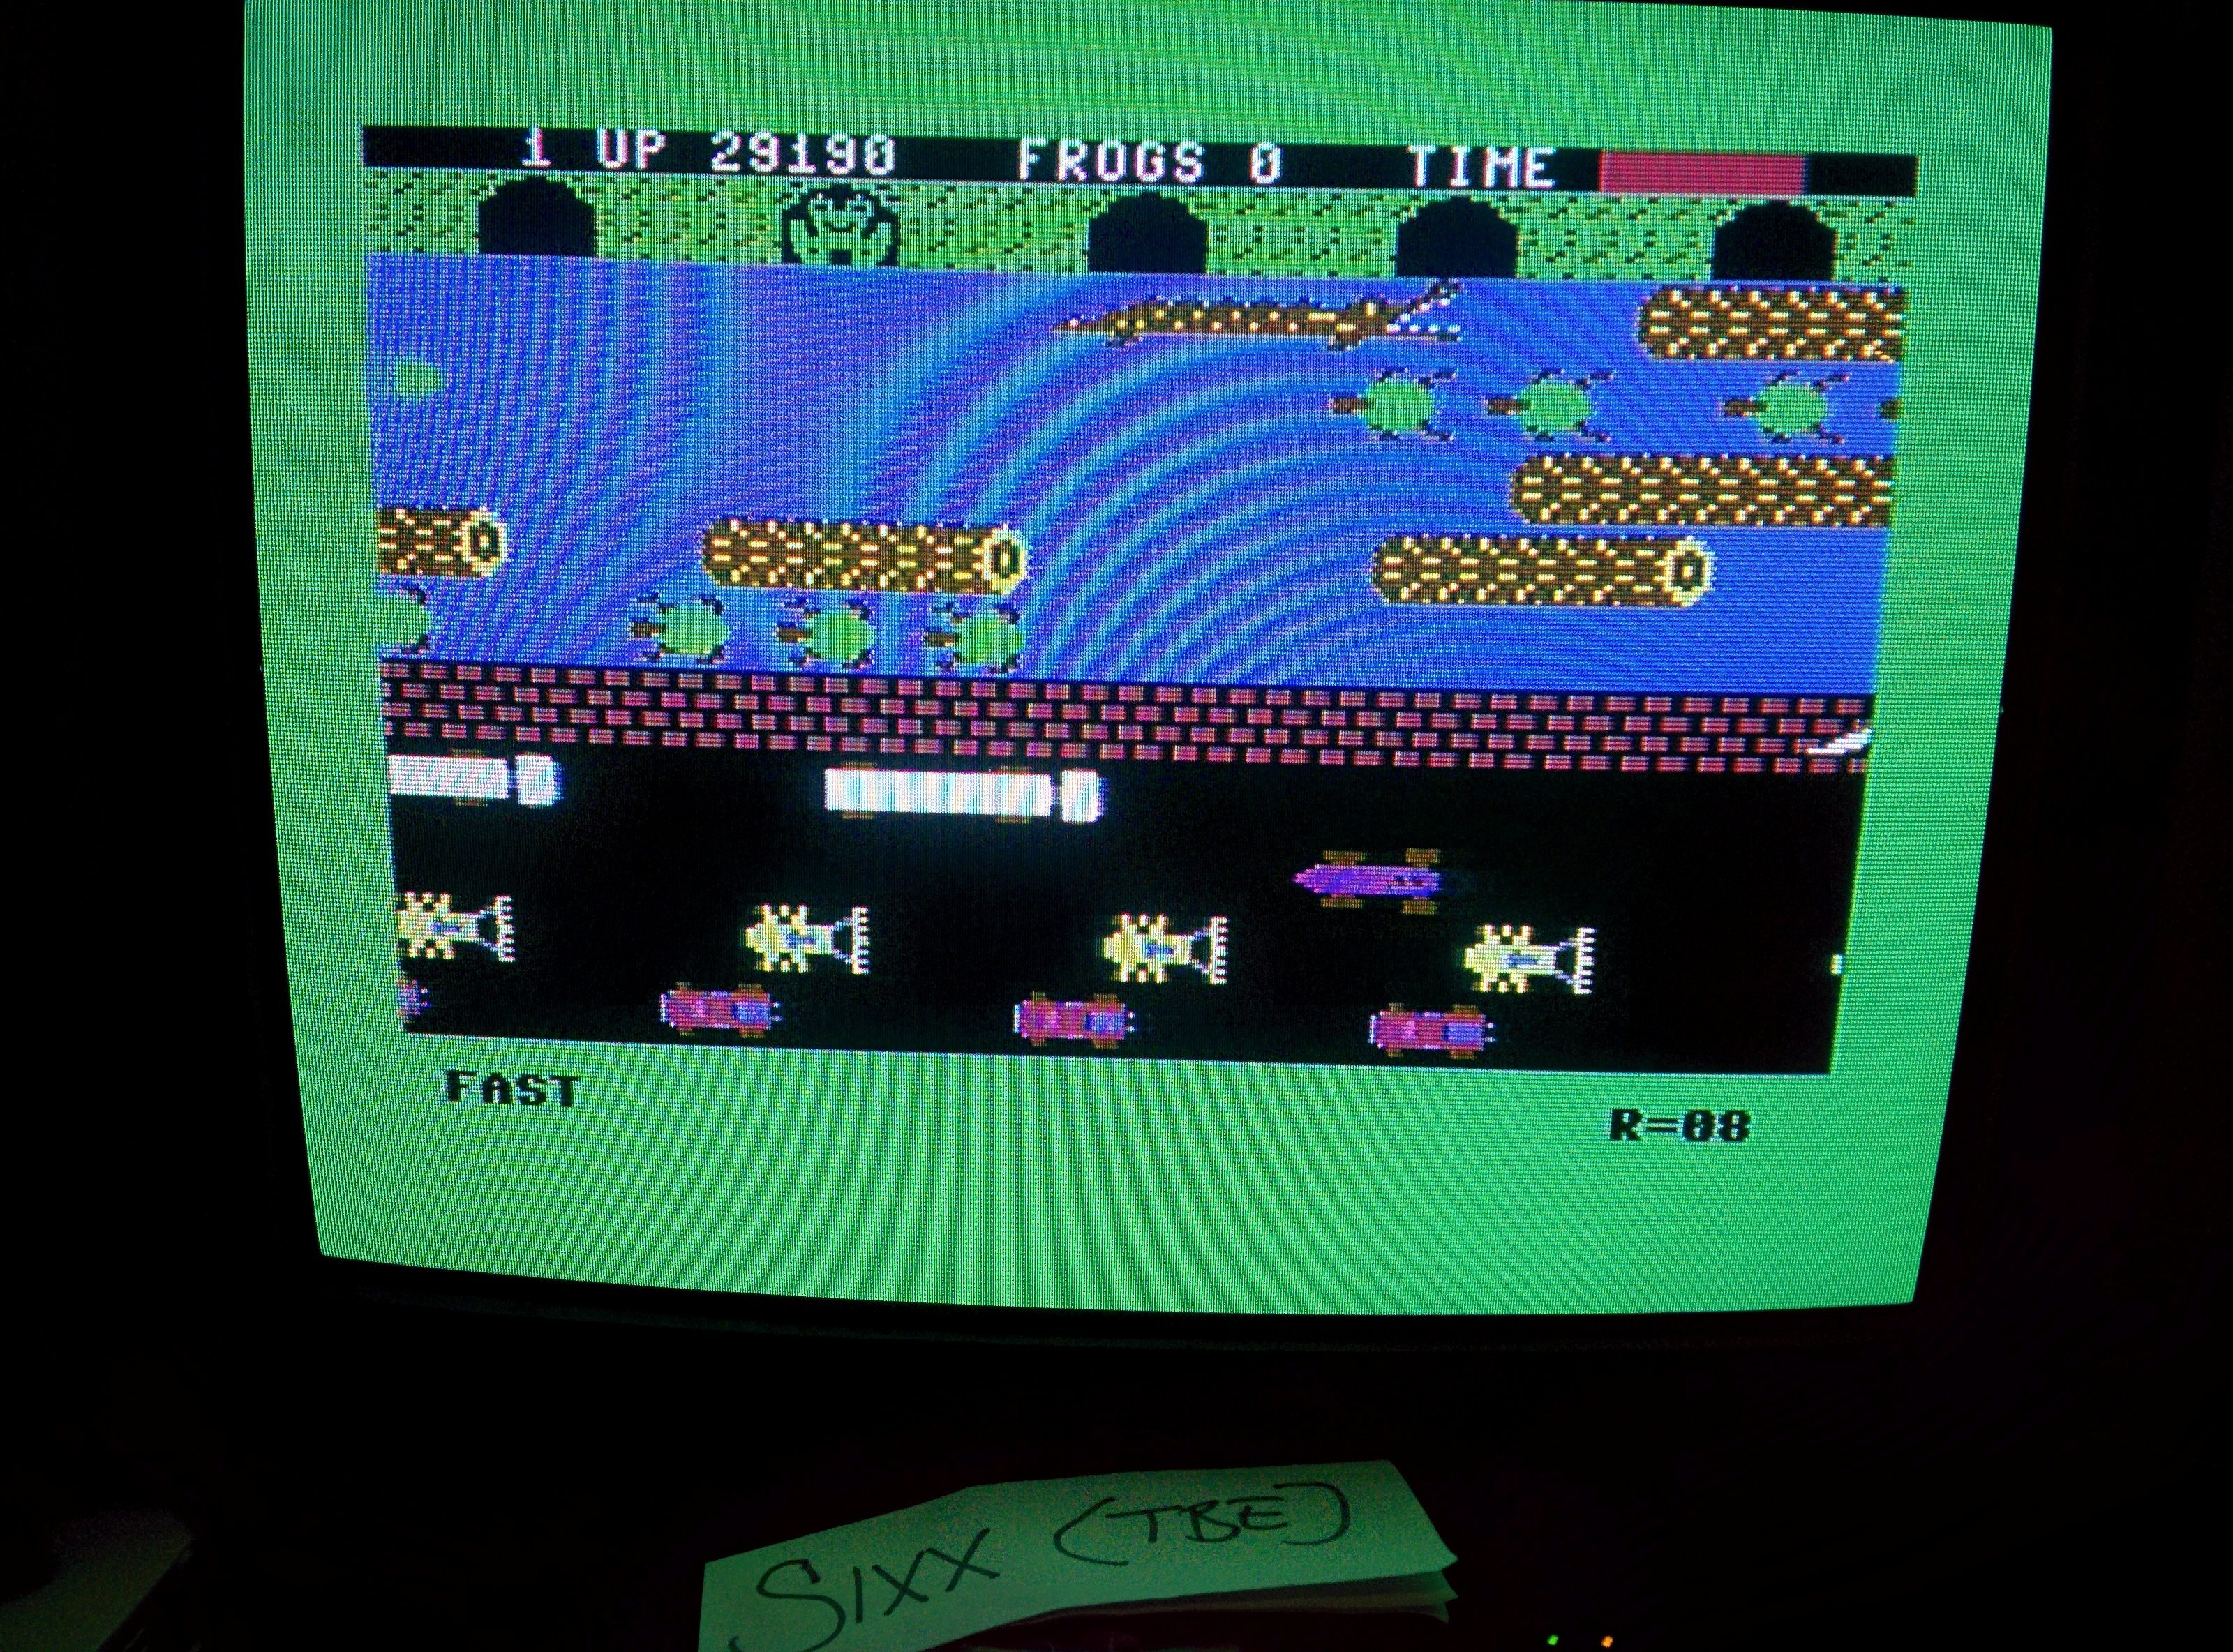 Sixx: Frogger: Parker Bros [Fast] (Commodore 64) 29,190 points on 2014-07-16 16:26:47